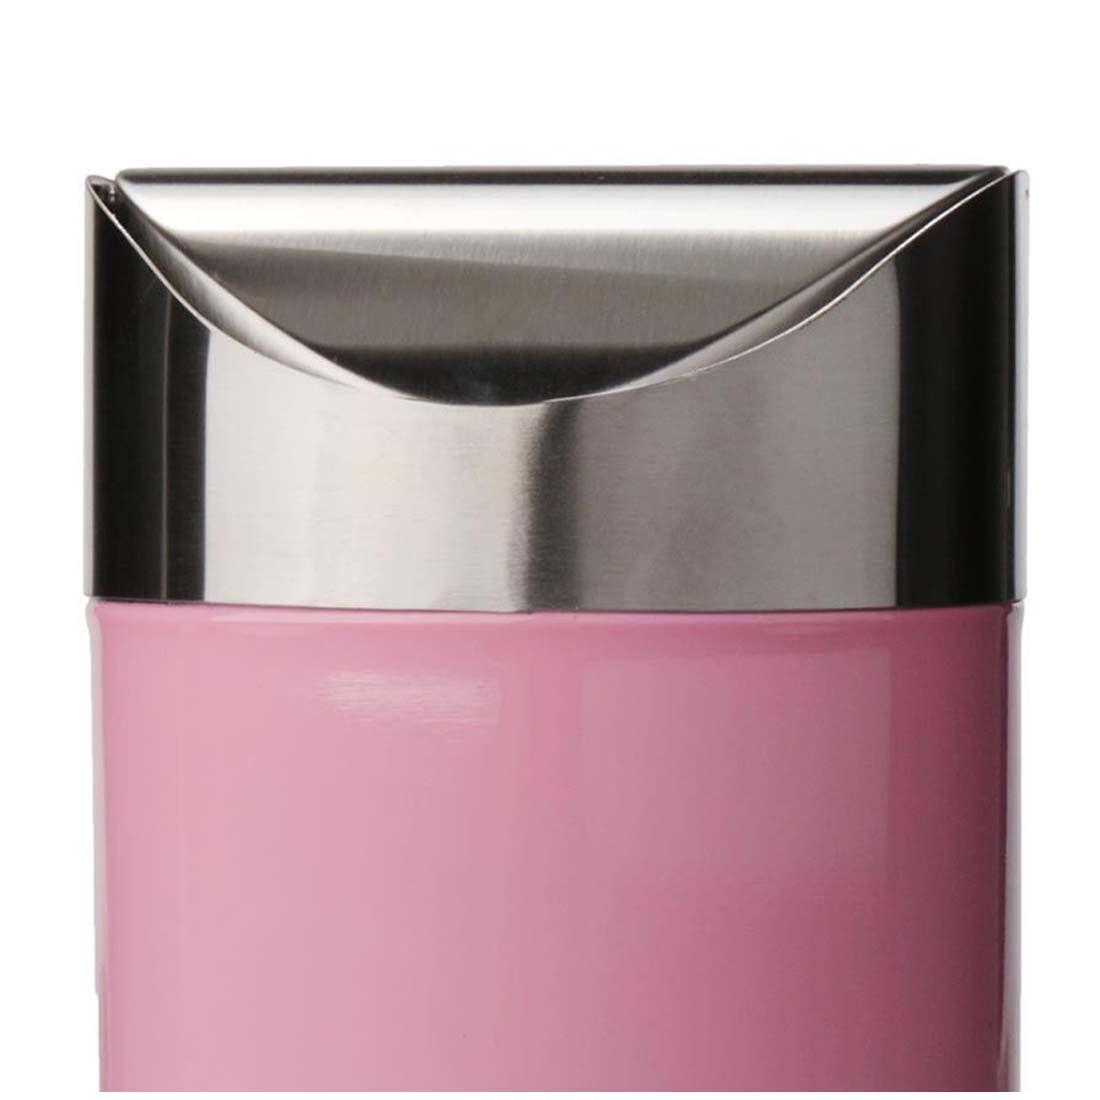 Pink Bins Us 7 53 16 Off Stainless Steel 1 5l Mini Worktop Kitchen Waste Dust Bin Rubbish With Swing Lid Pink In Waste Bins From Home Garden On